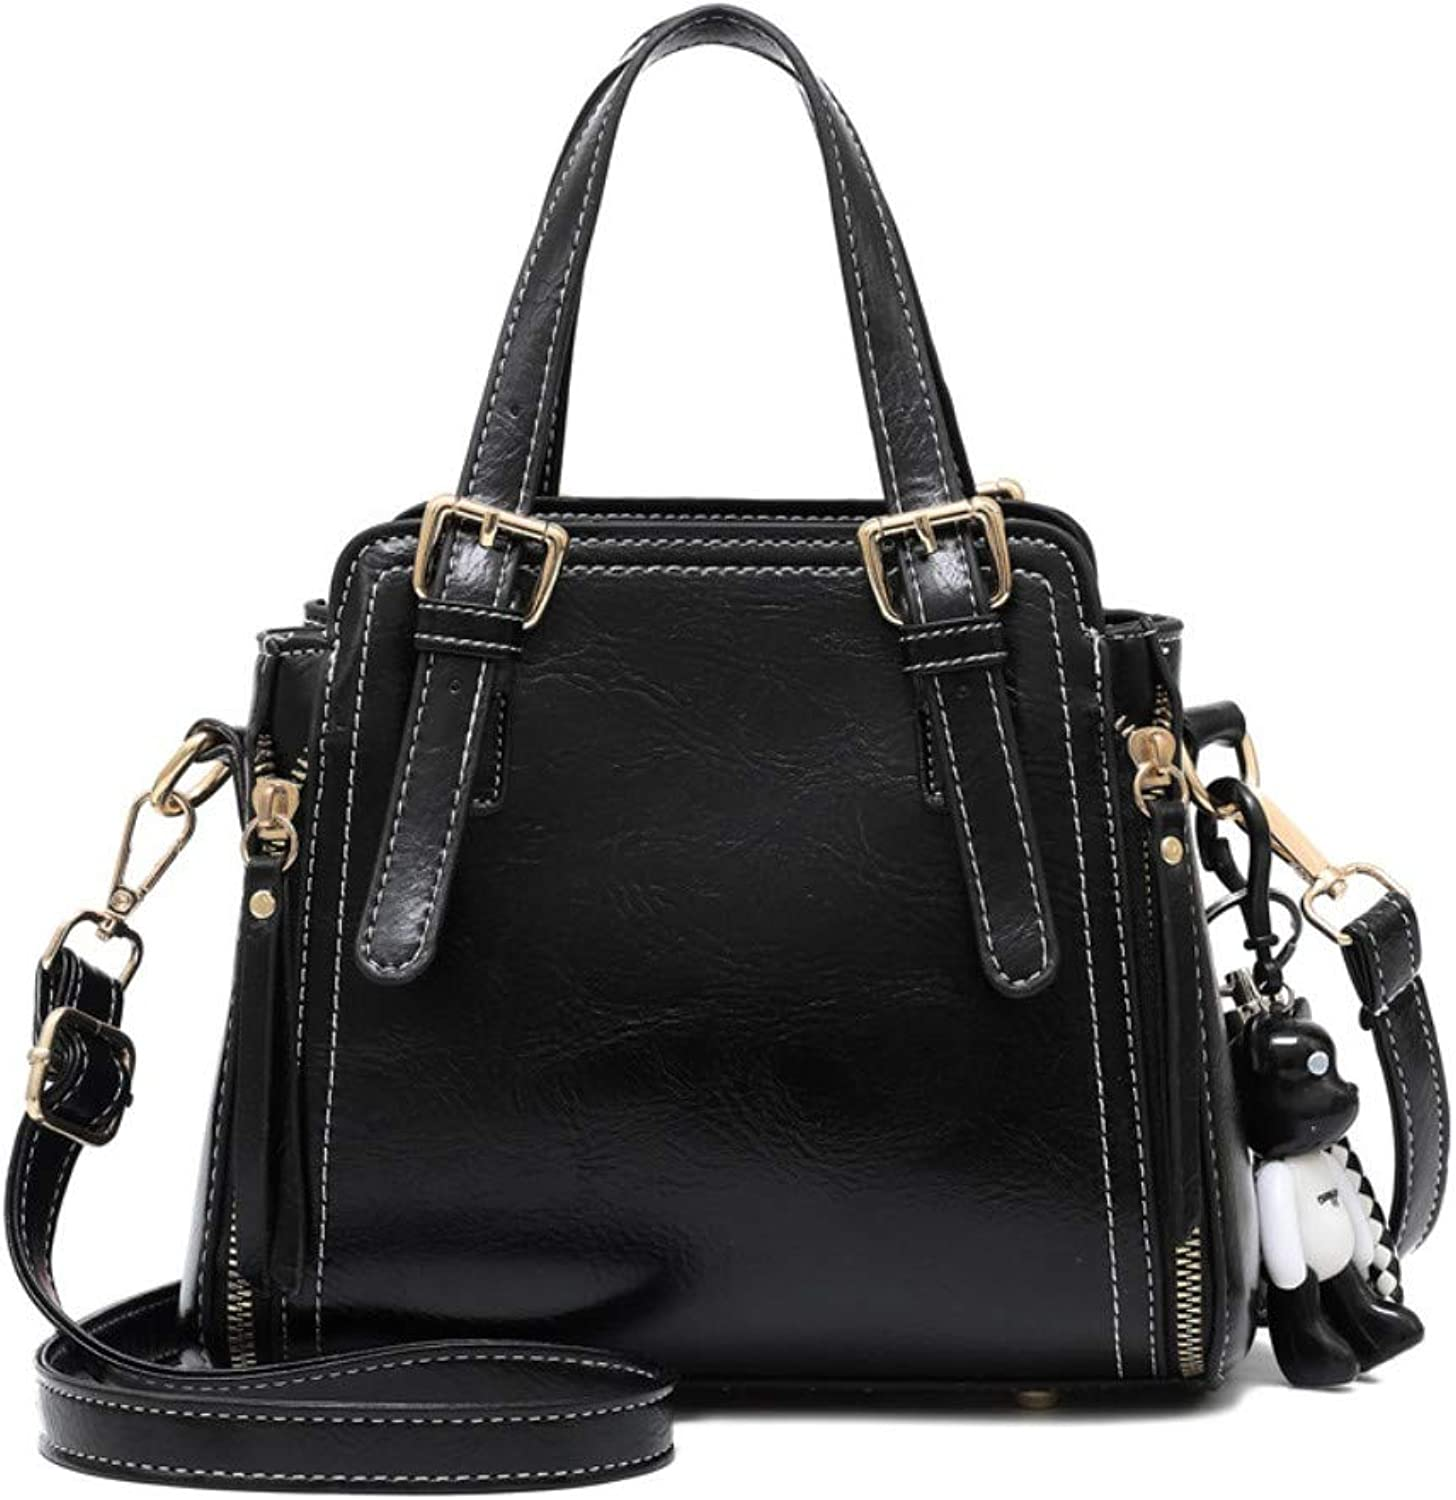 Z.H-H Wild Fashion, Small Fresh Ladies, Casual, Simple, Large-Capacity Personality Shoulder Bag Shoulder Bag